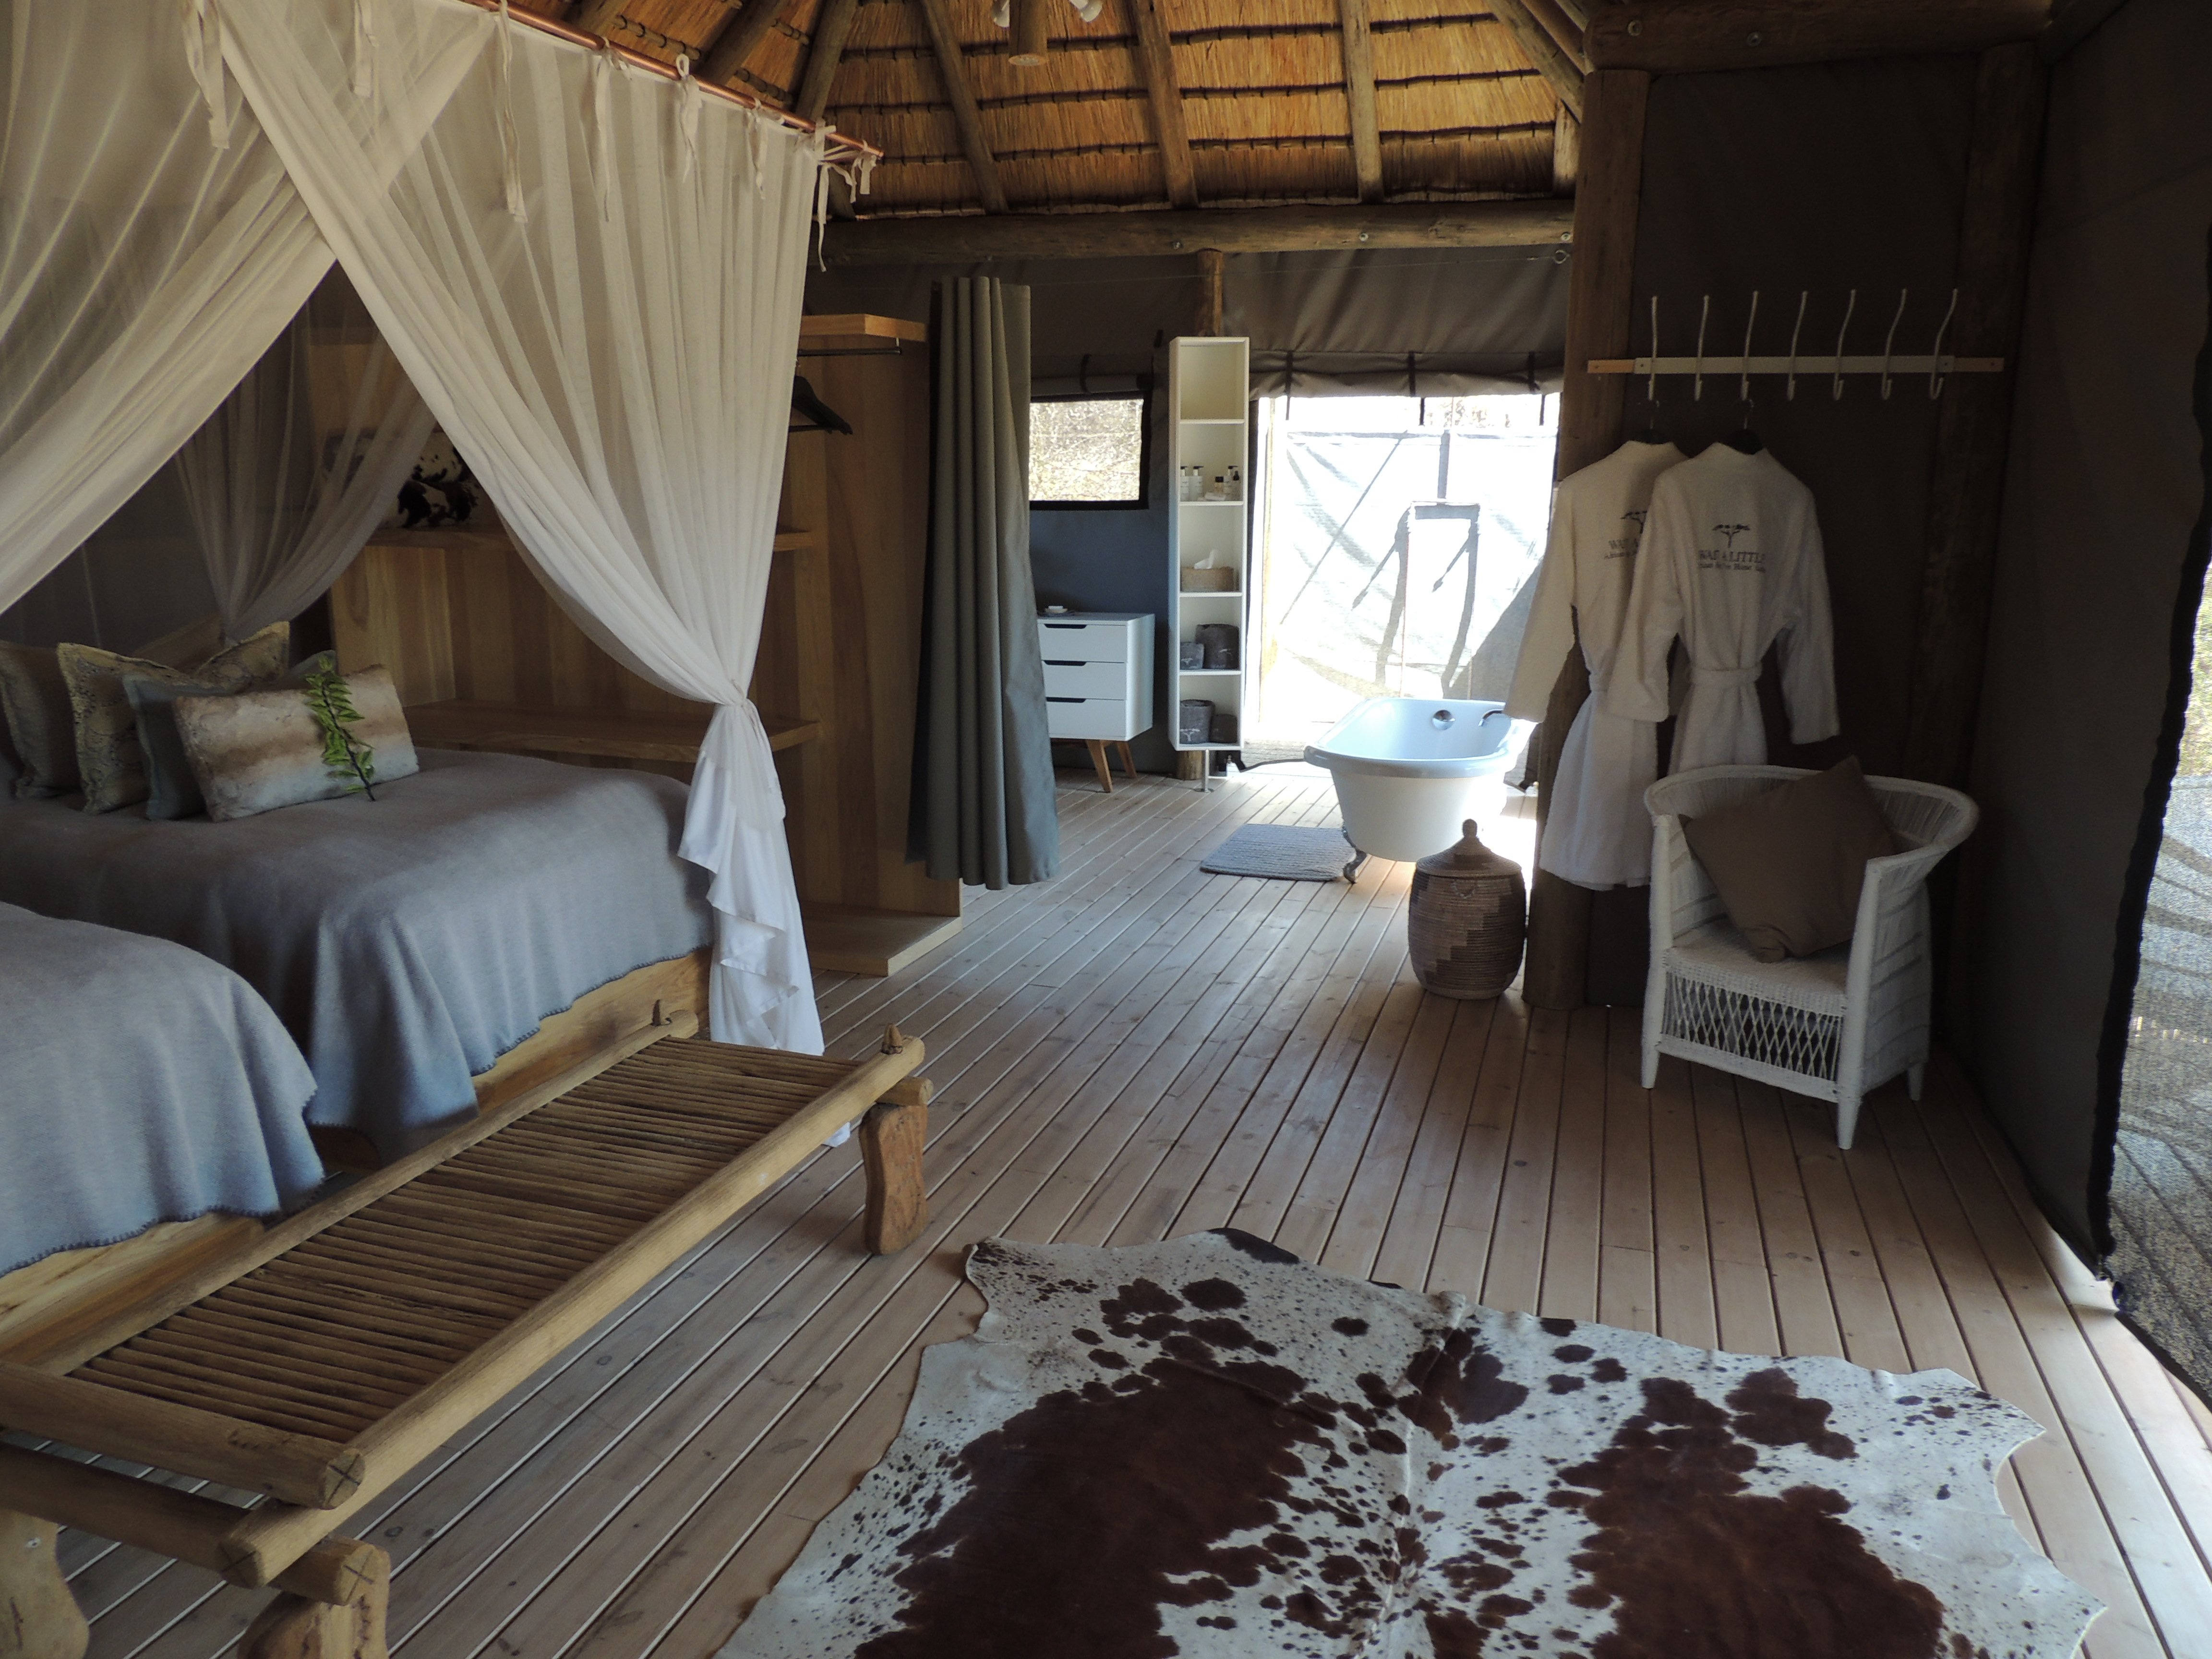 Big 5 Horse Safari - Wait A Little Camp Accommodation